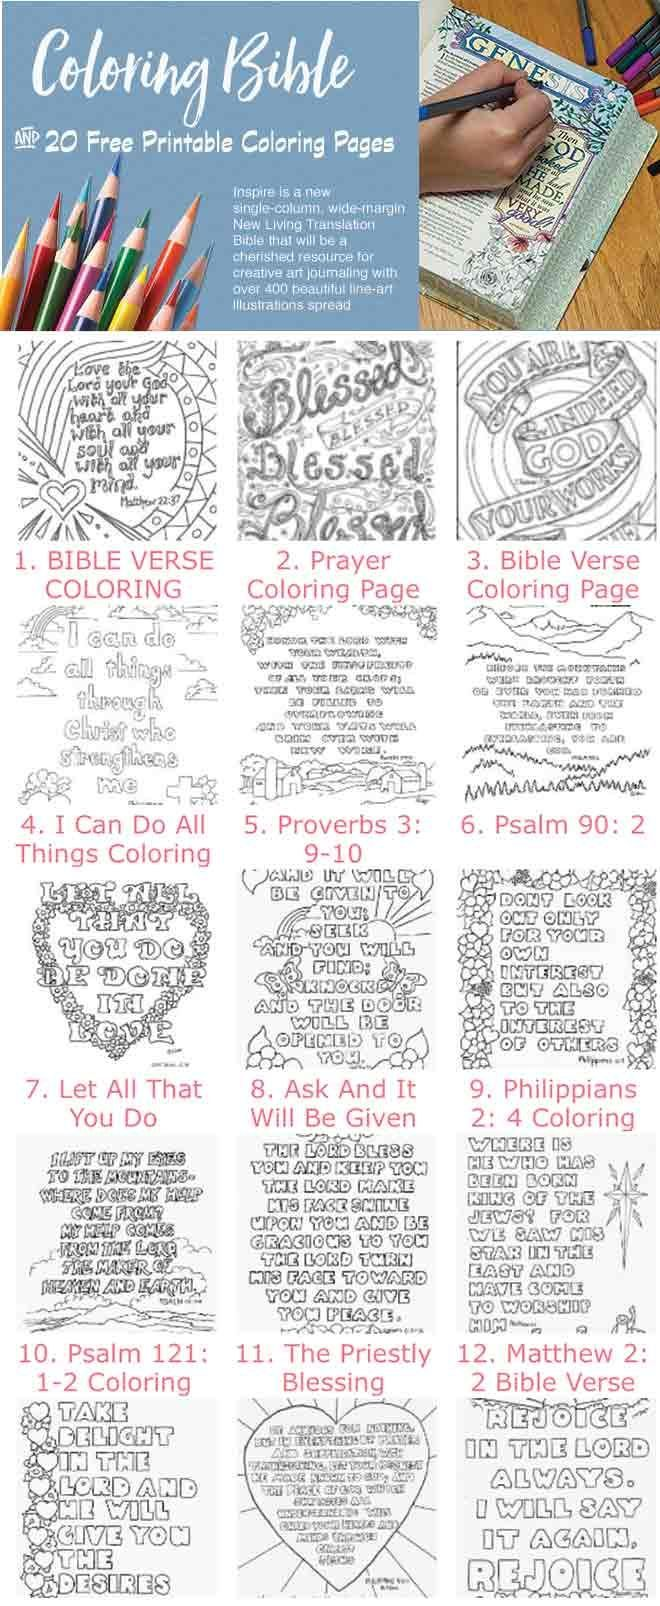 free bible coloring pages and a peek into the new bible cooling